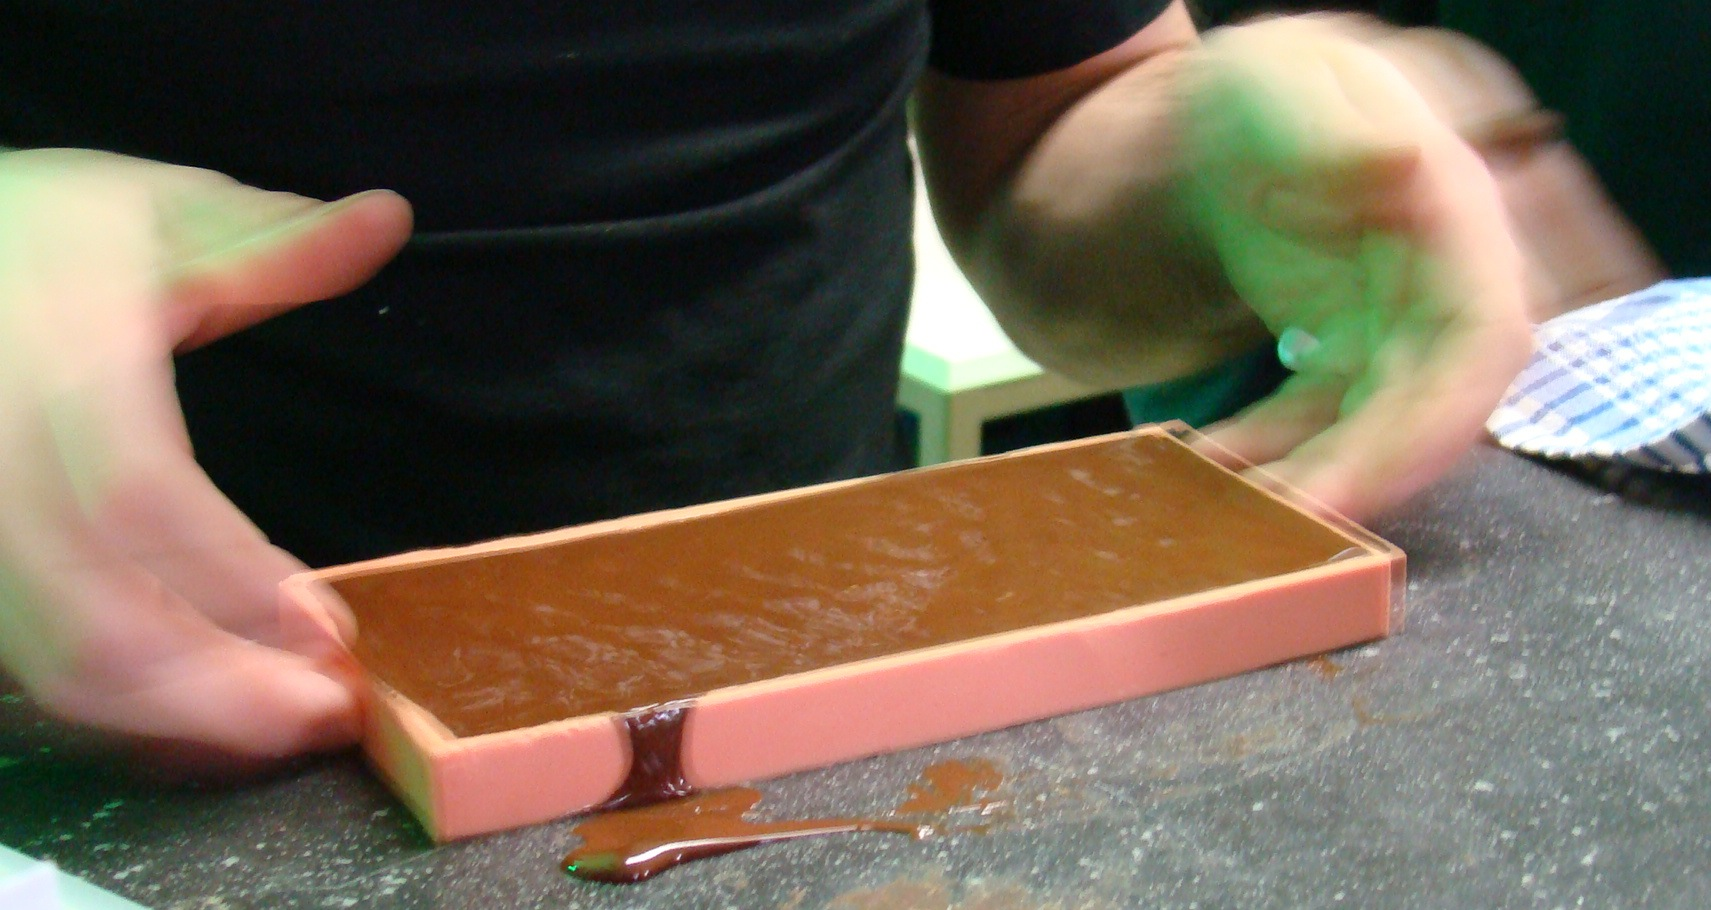 Shaking the poured chocolate in order to release air bubbles.